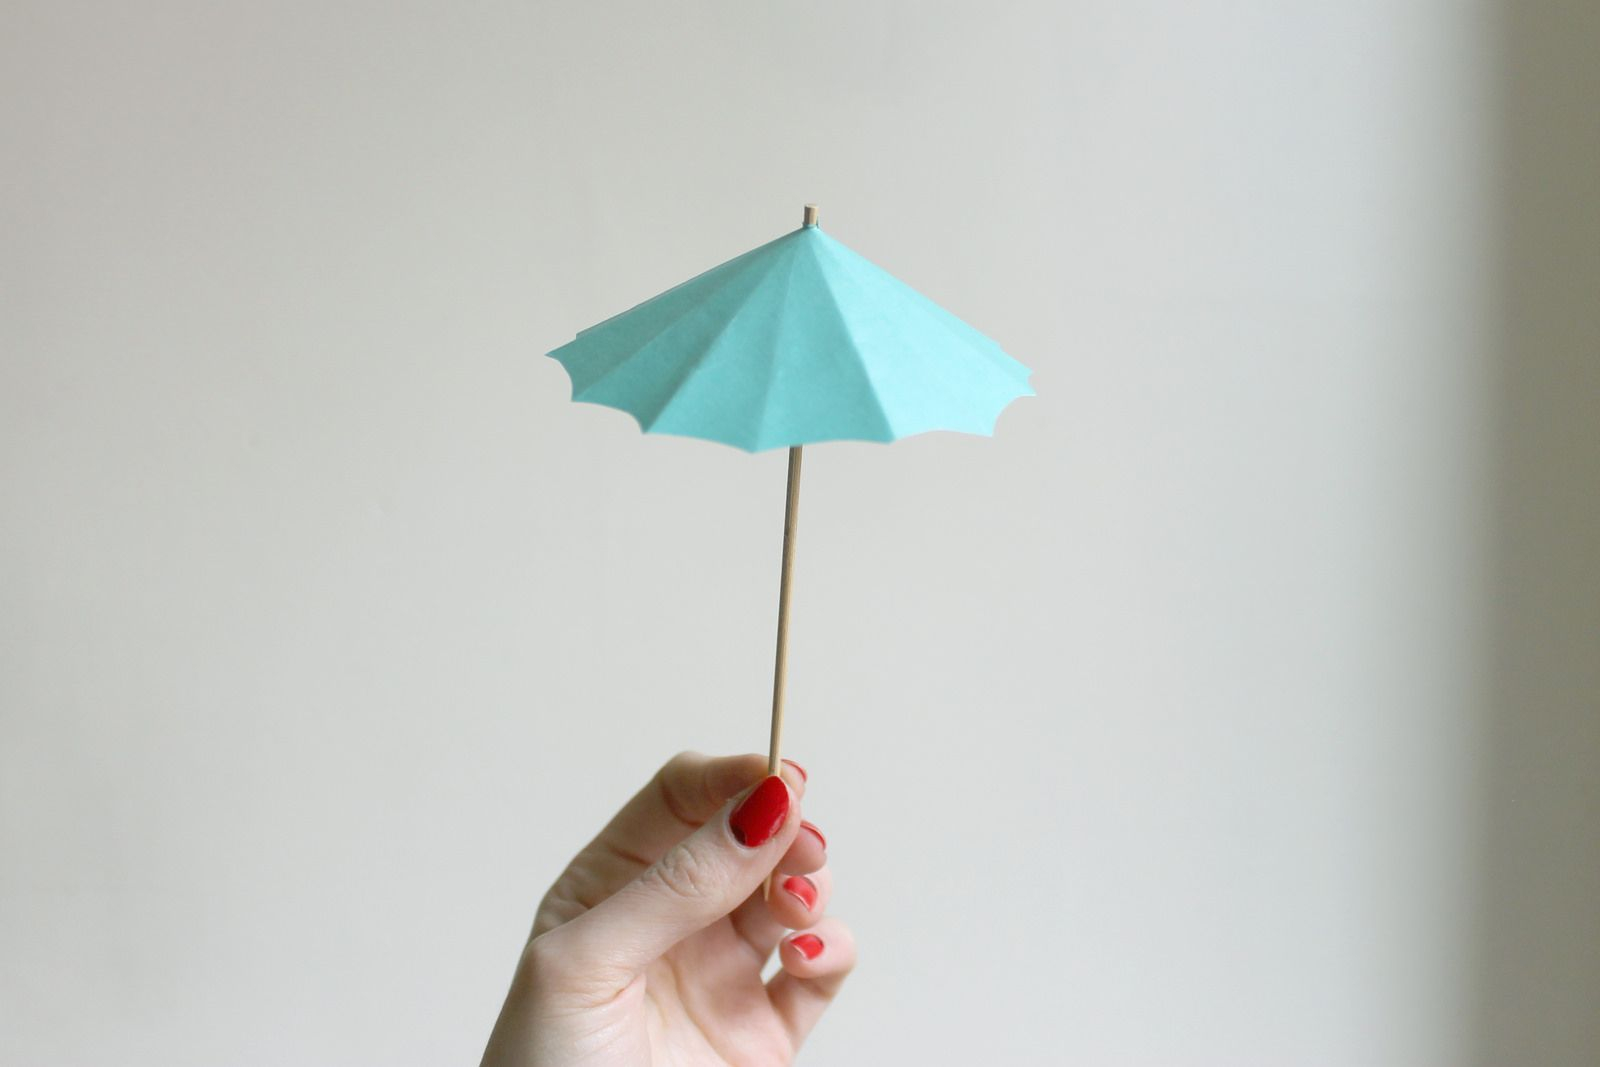 Create paper umbrella craft for party glass decor How To Make Diy Drink Umbrellas Party Craft Projects